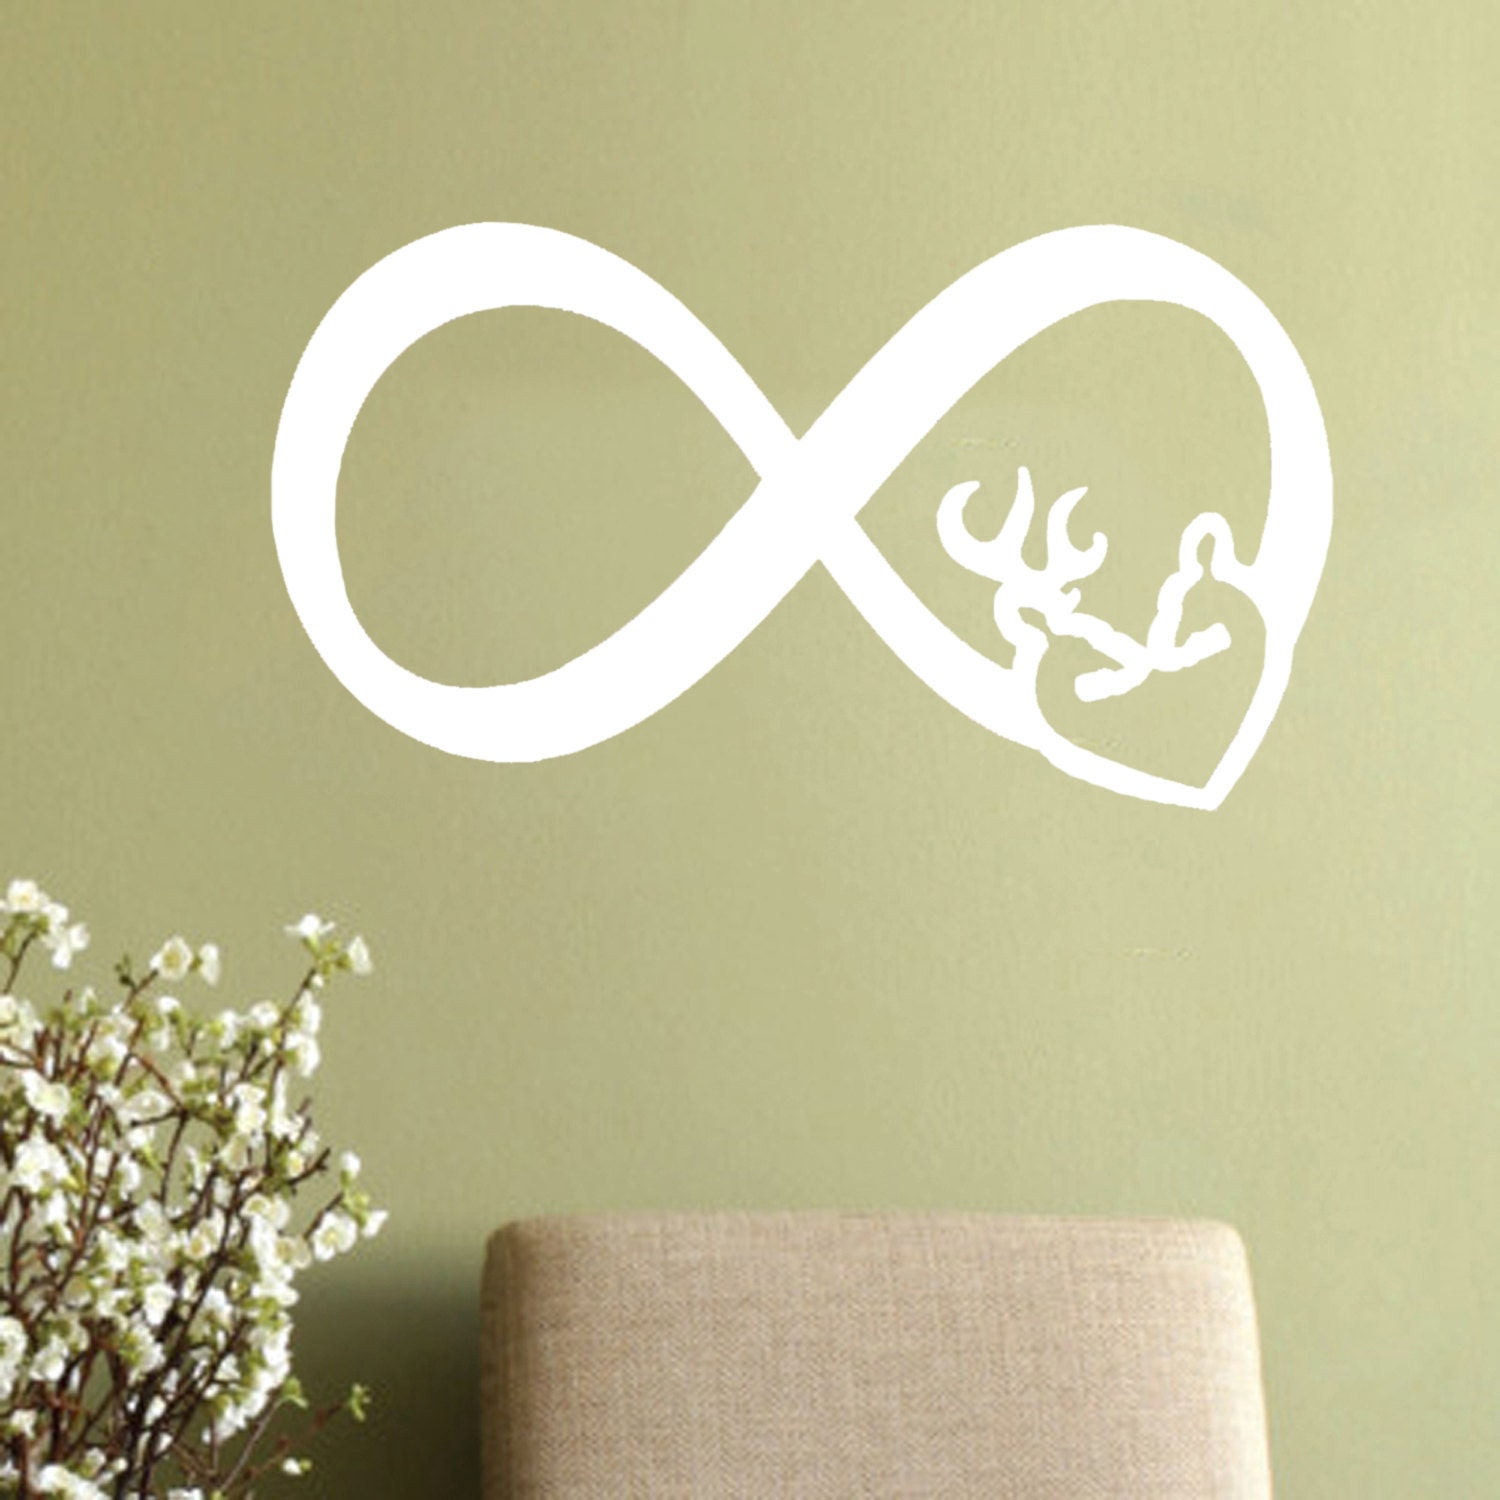 Magnificent Infinity Symbol Wall Decor Picture Collection - Art ...